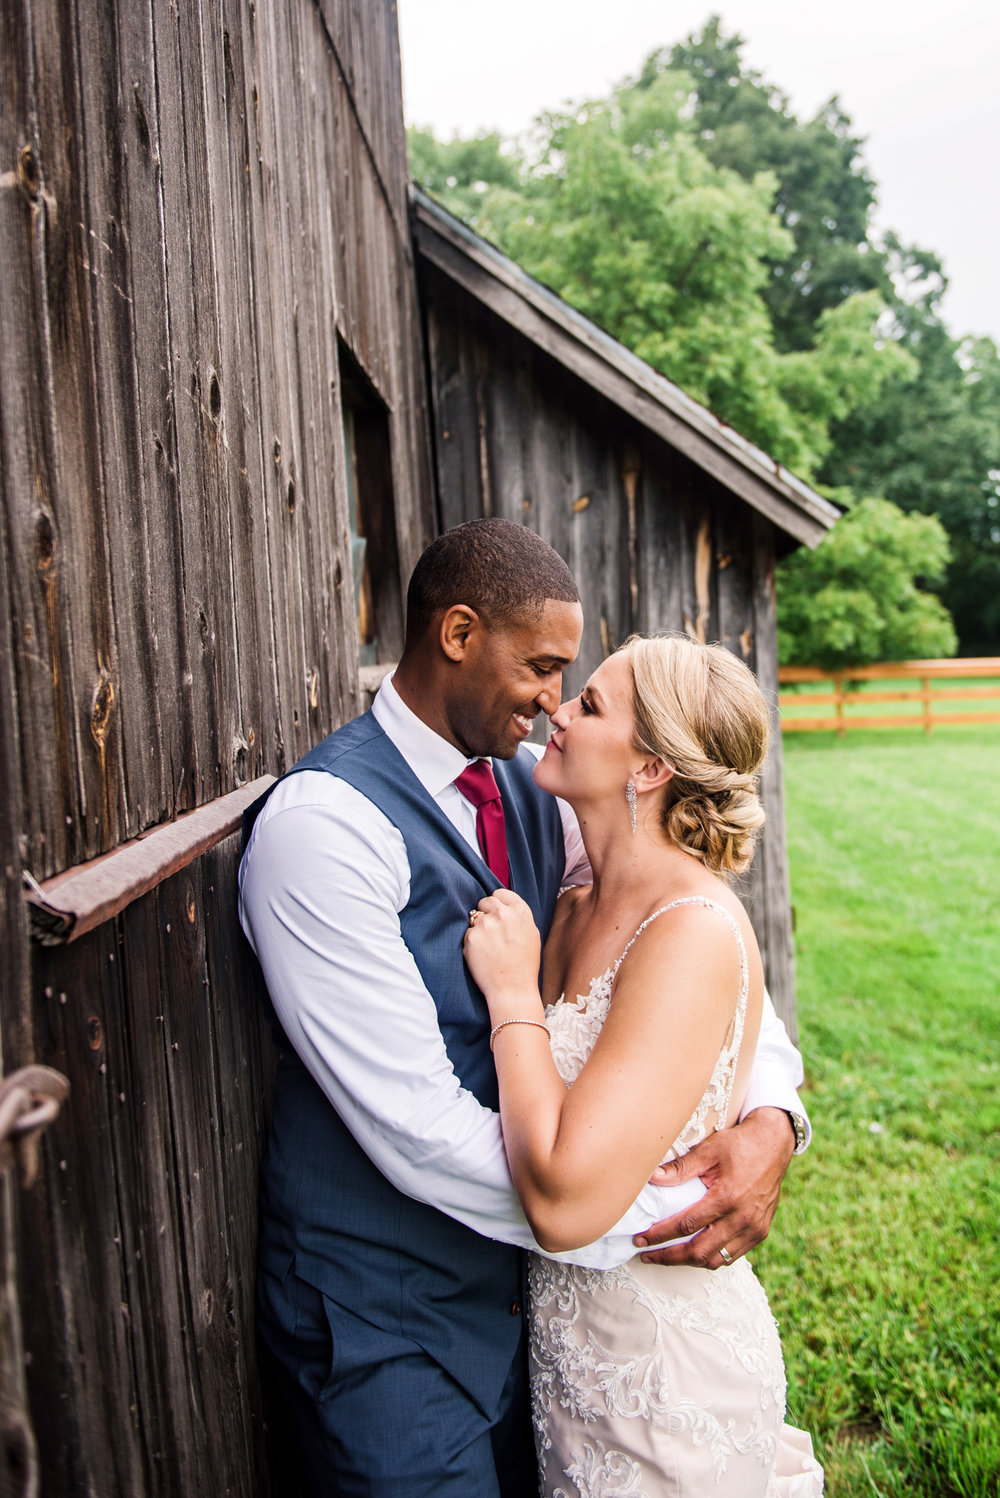 Cobblestone_Wedding_Barn_Rochester_Wedding_JILL_STUDIO_Rochester_NY_Photographer_DSC_7863.jpg